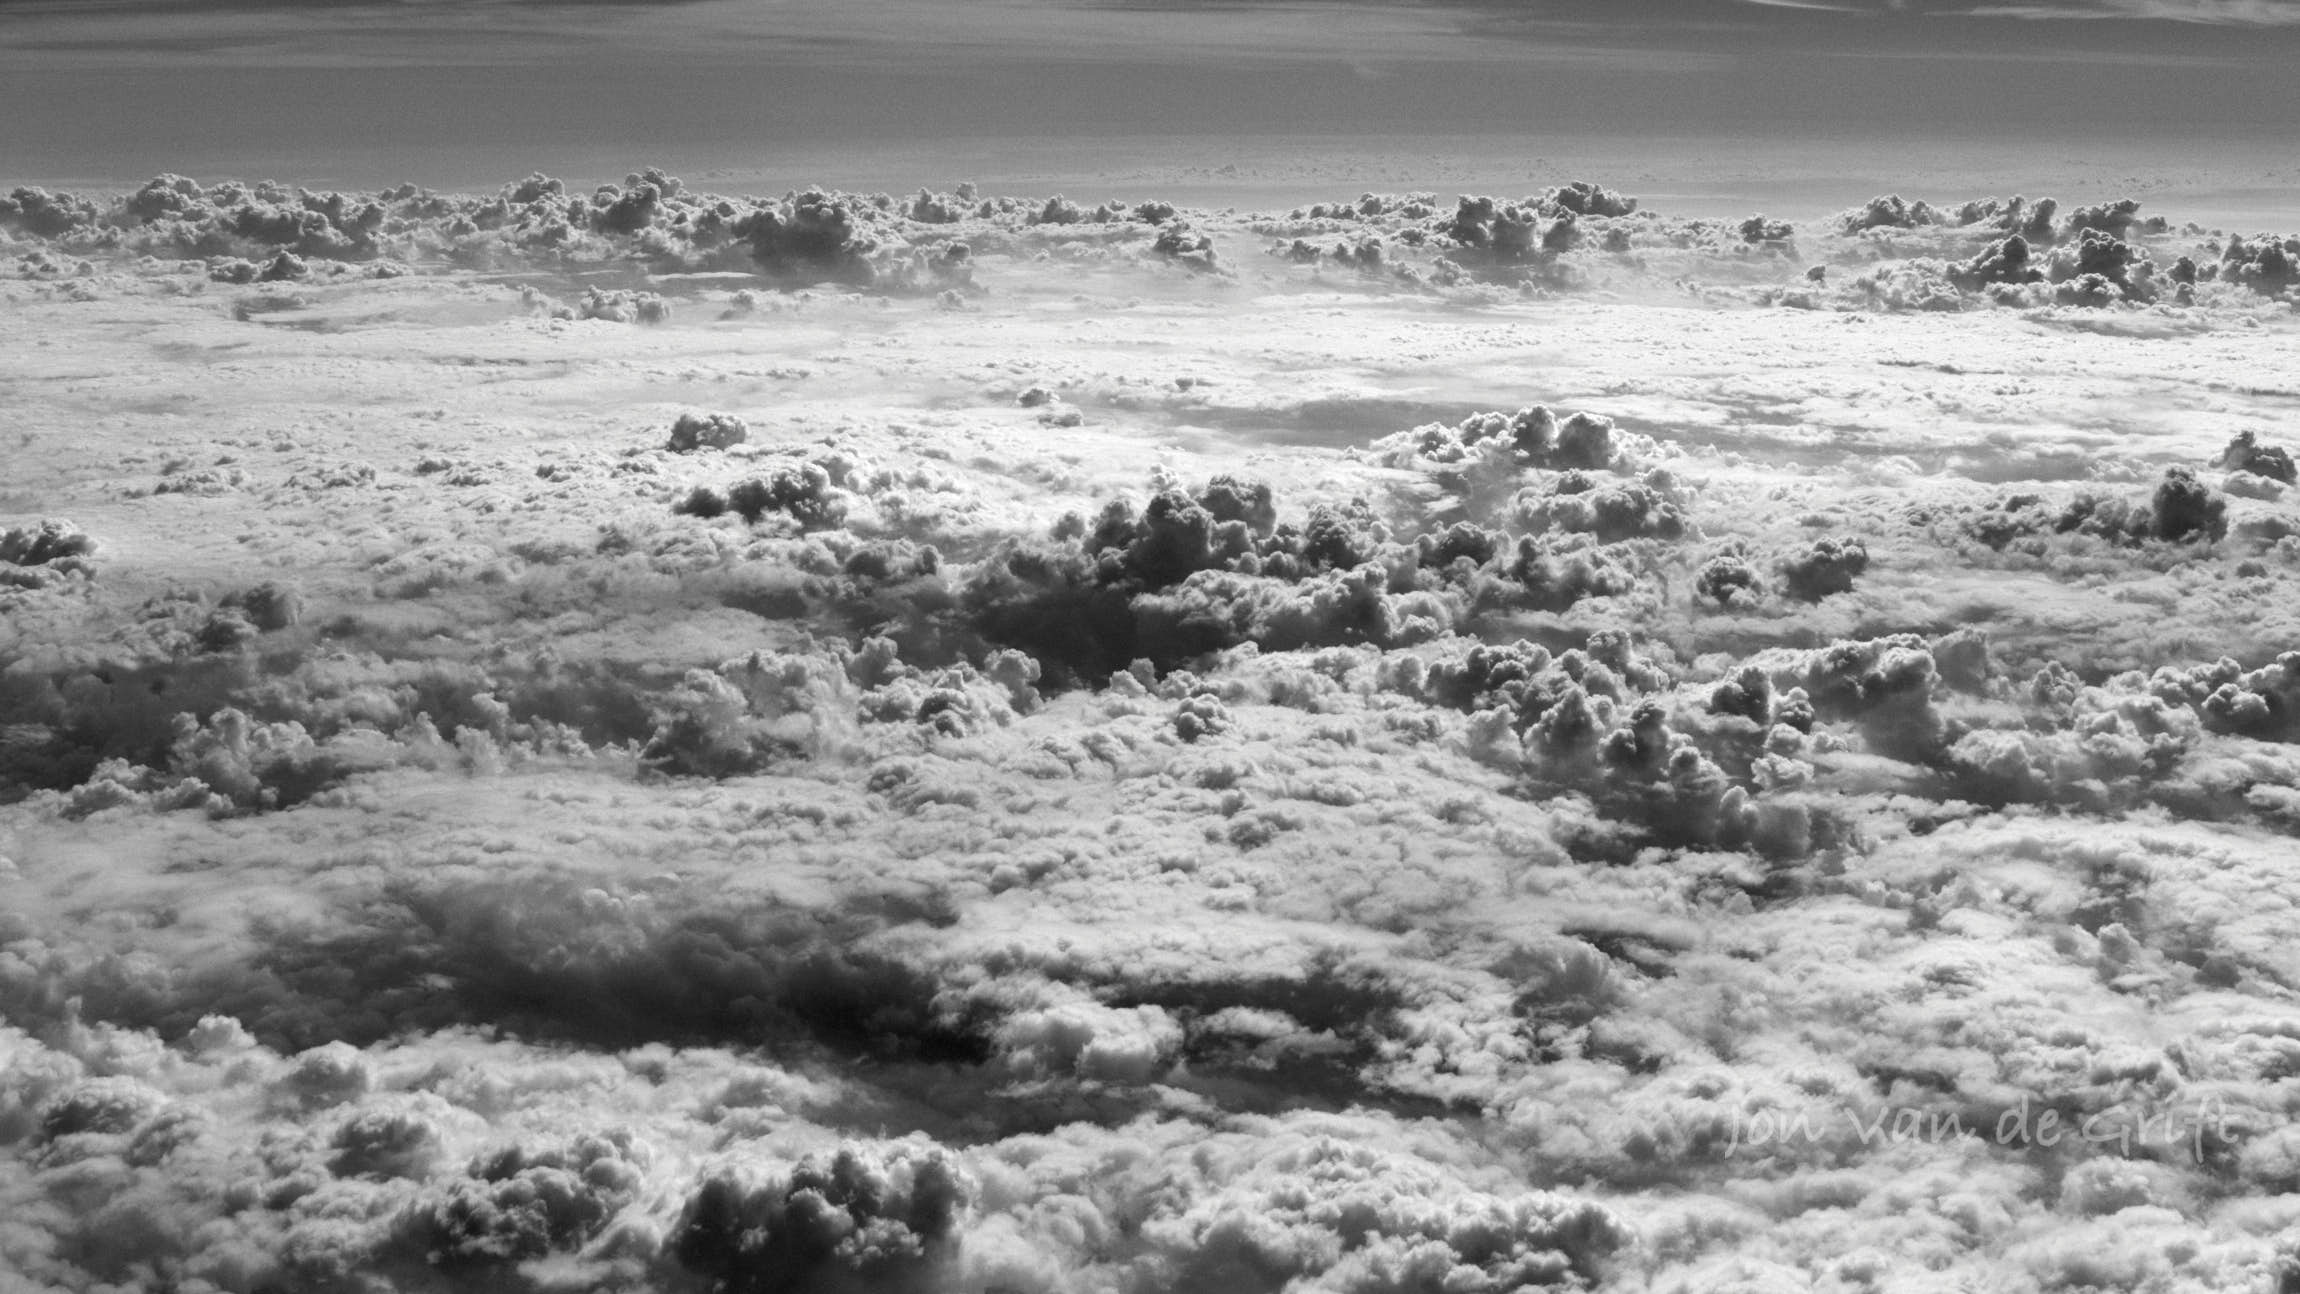 Monochrome aerial photograph of sun reflecting off cumulus cloud tops with a distant horizon.